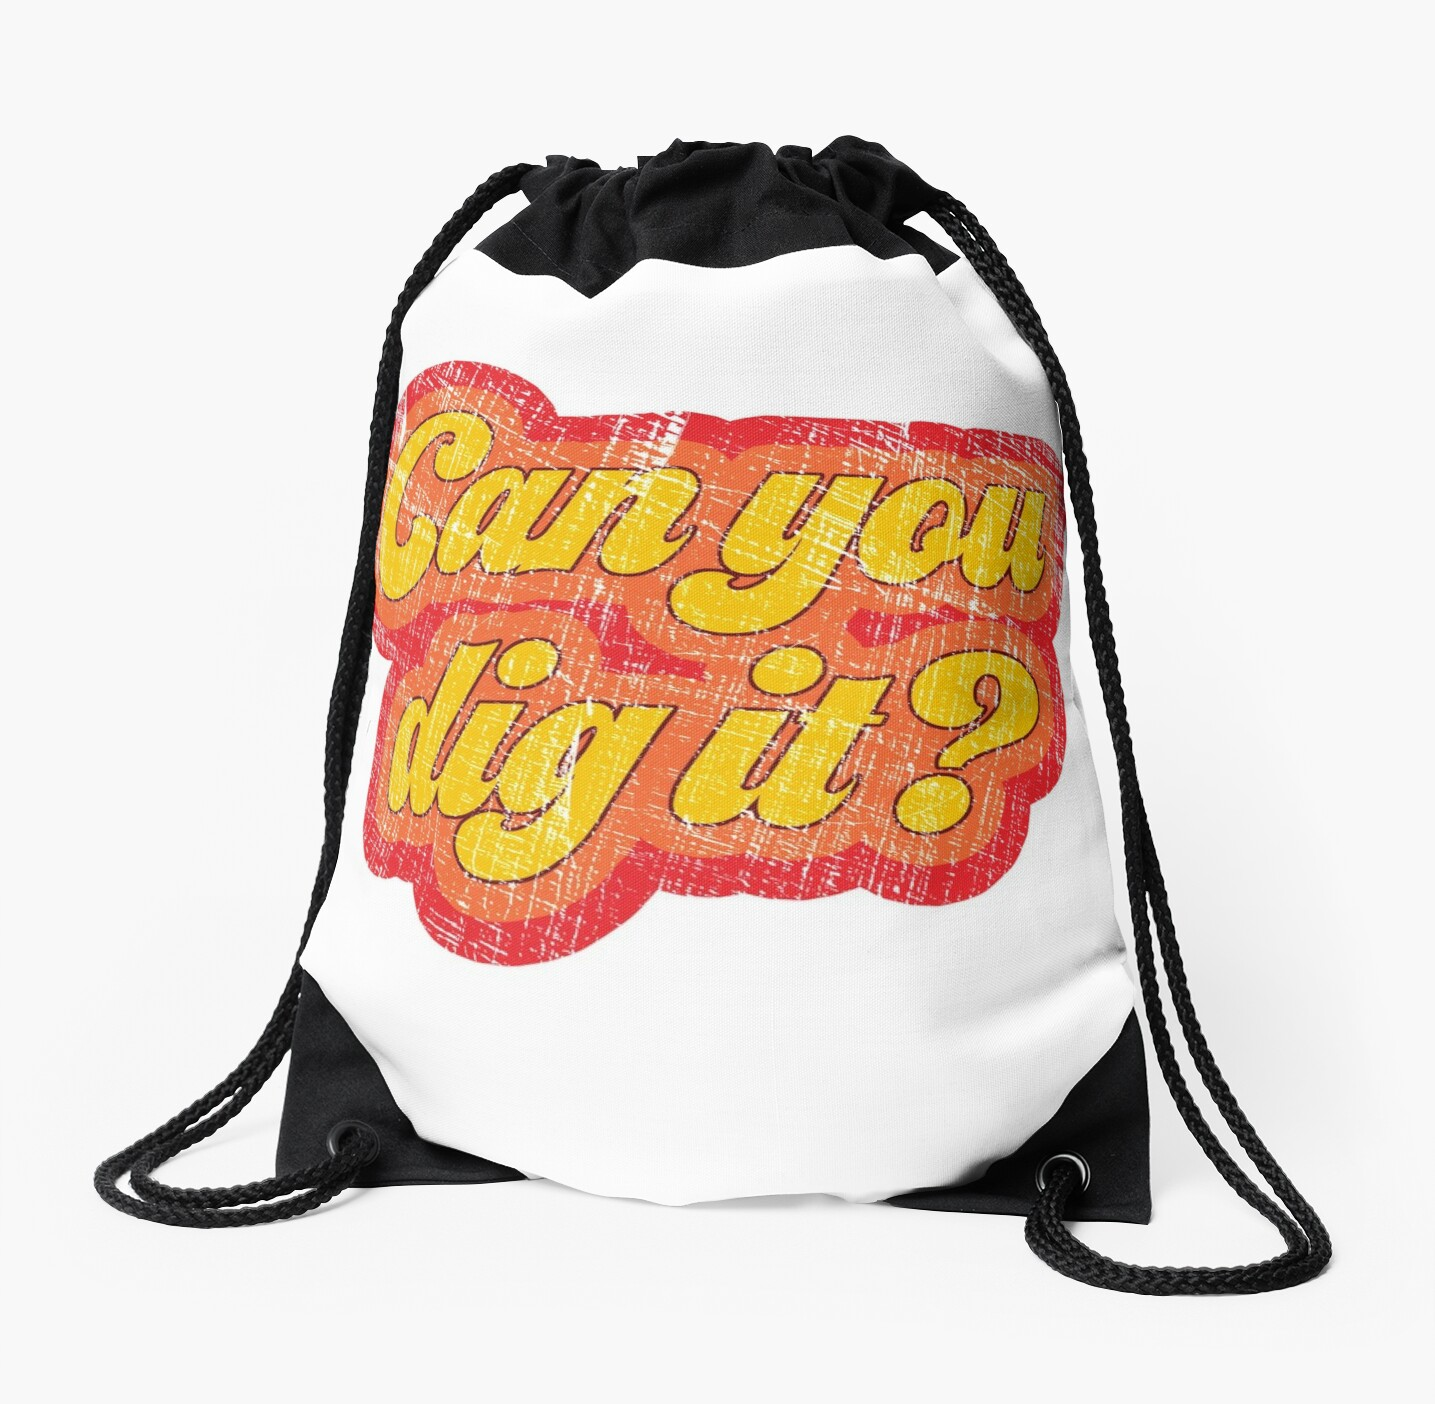 vintage 1970s can you dig it drawstring bags by webdango redbubble 80s House Decor vintage 1970s can you dig it